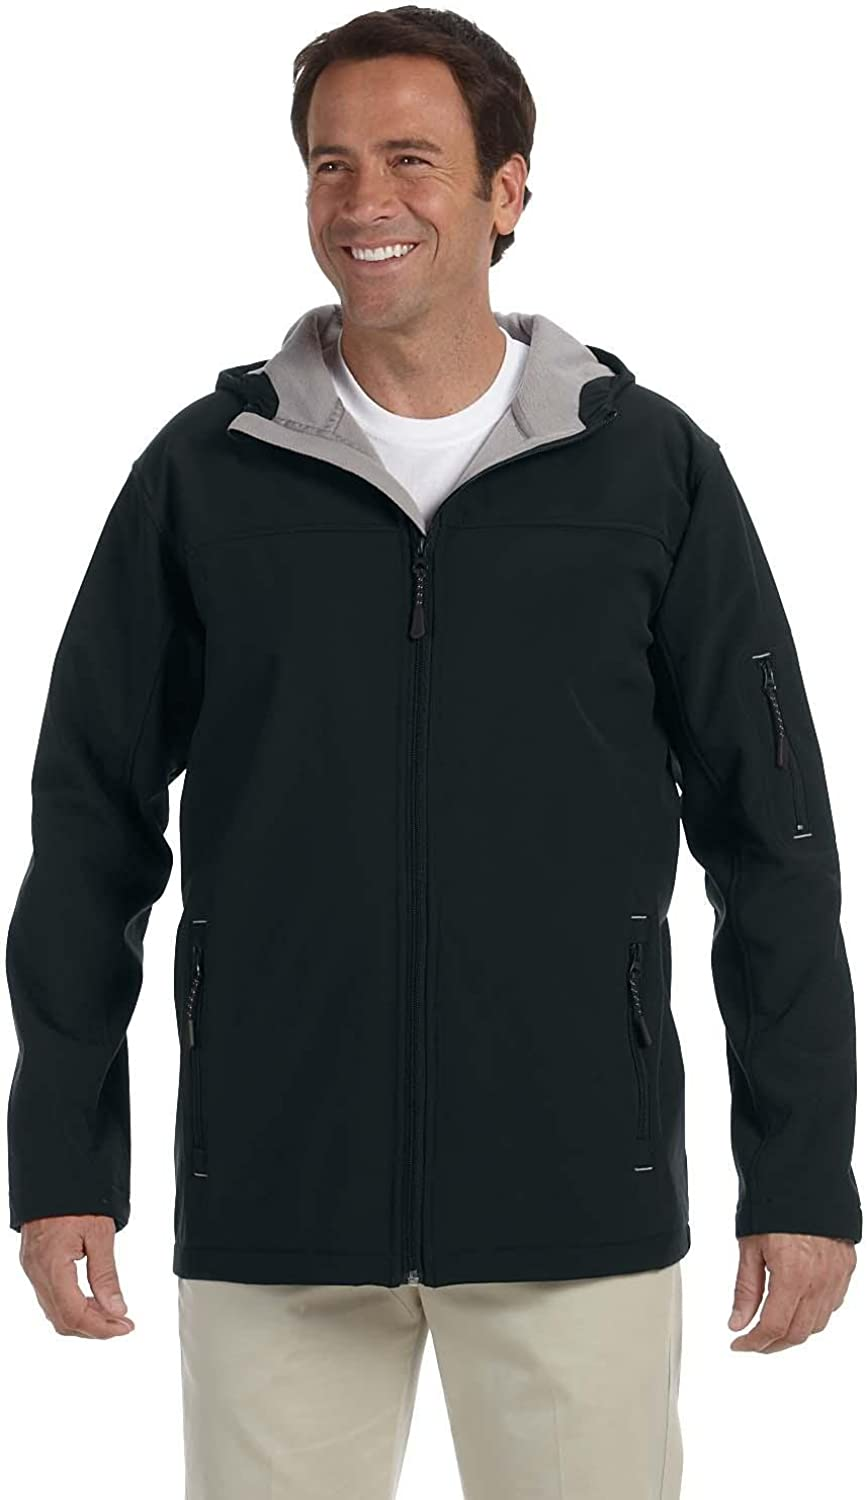 Devon Department New products, world's highest quality popular! store Jones Mens Hooded Jacket D998 Soft Shell